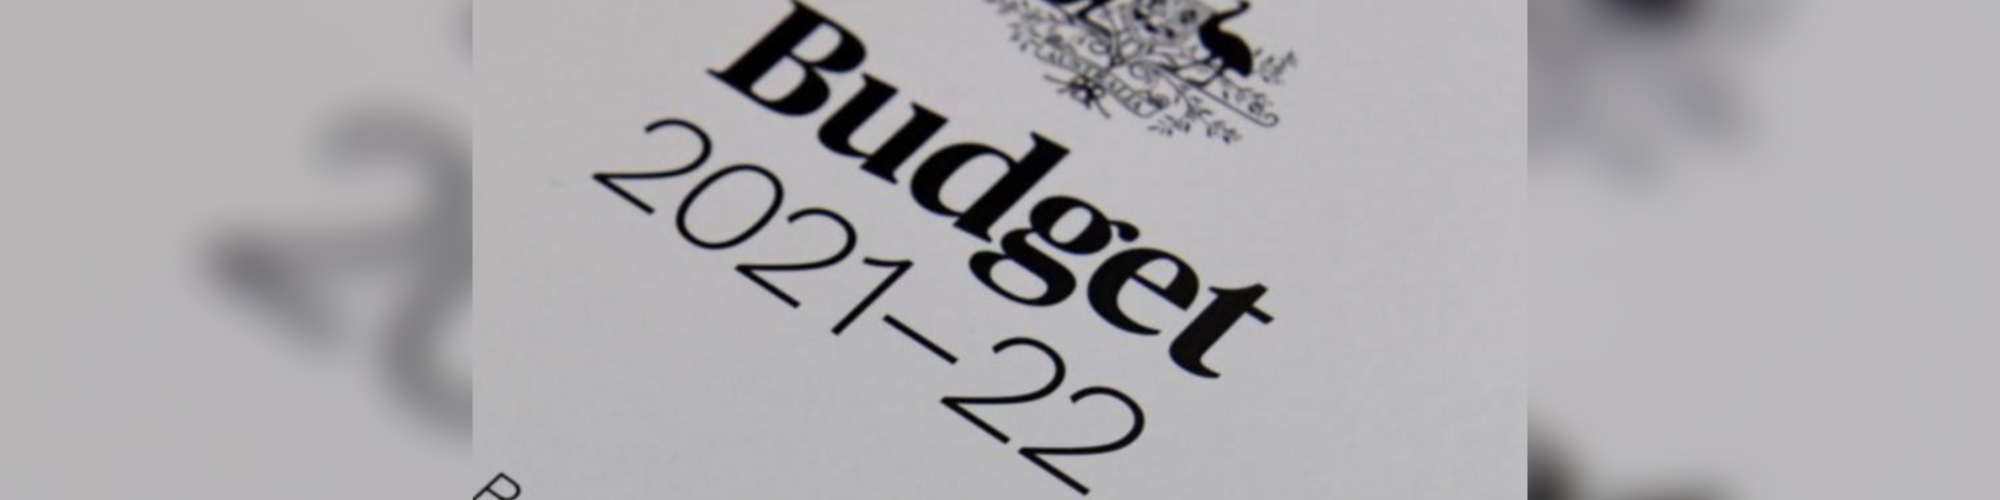 Federal Budget 2021 – 22: Extended tax cuts and incentives a boost for business